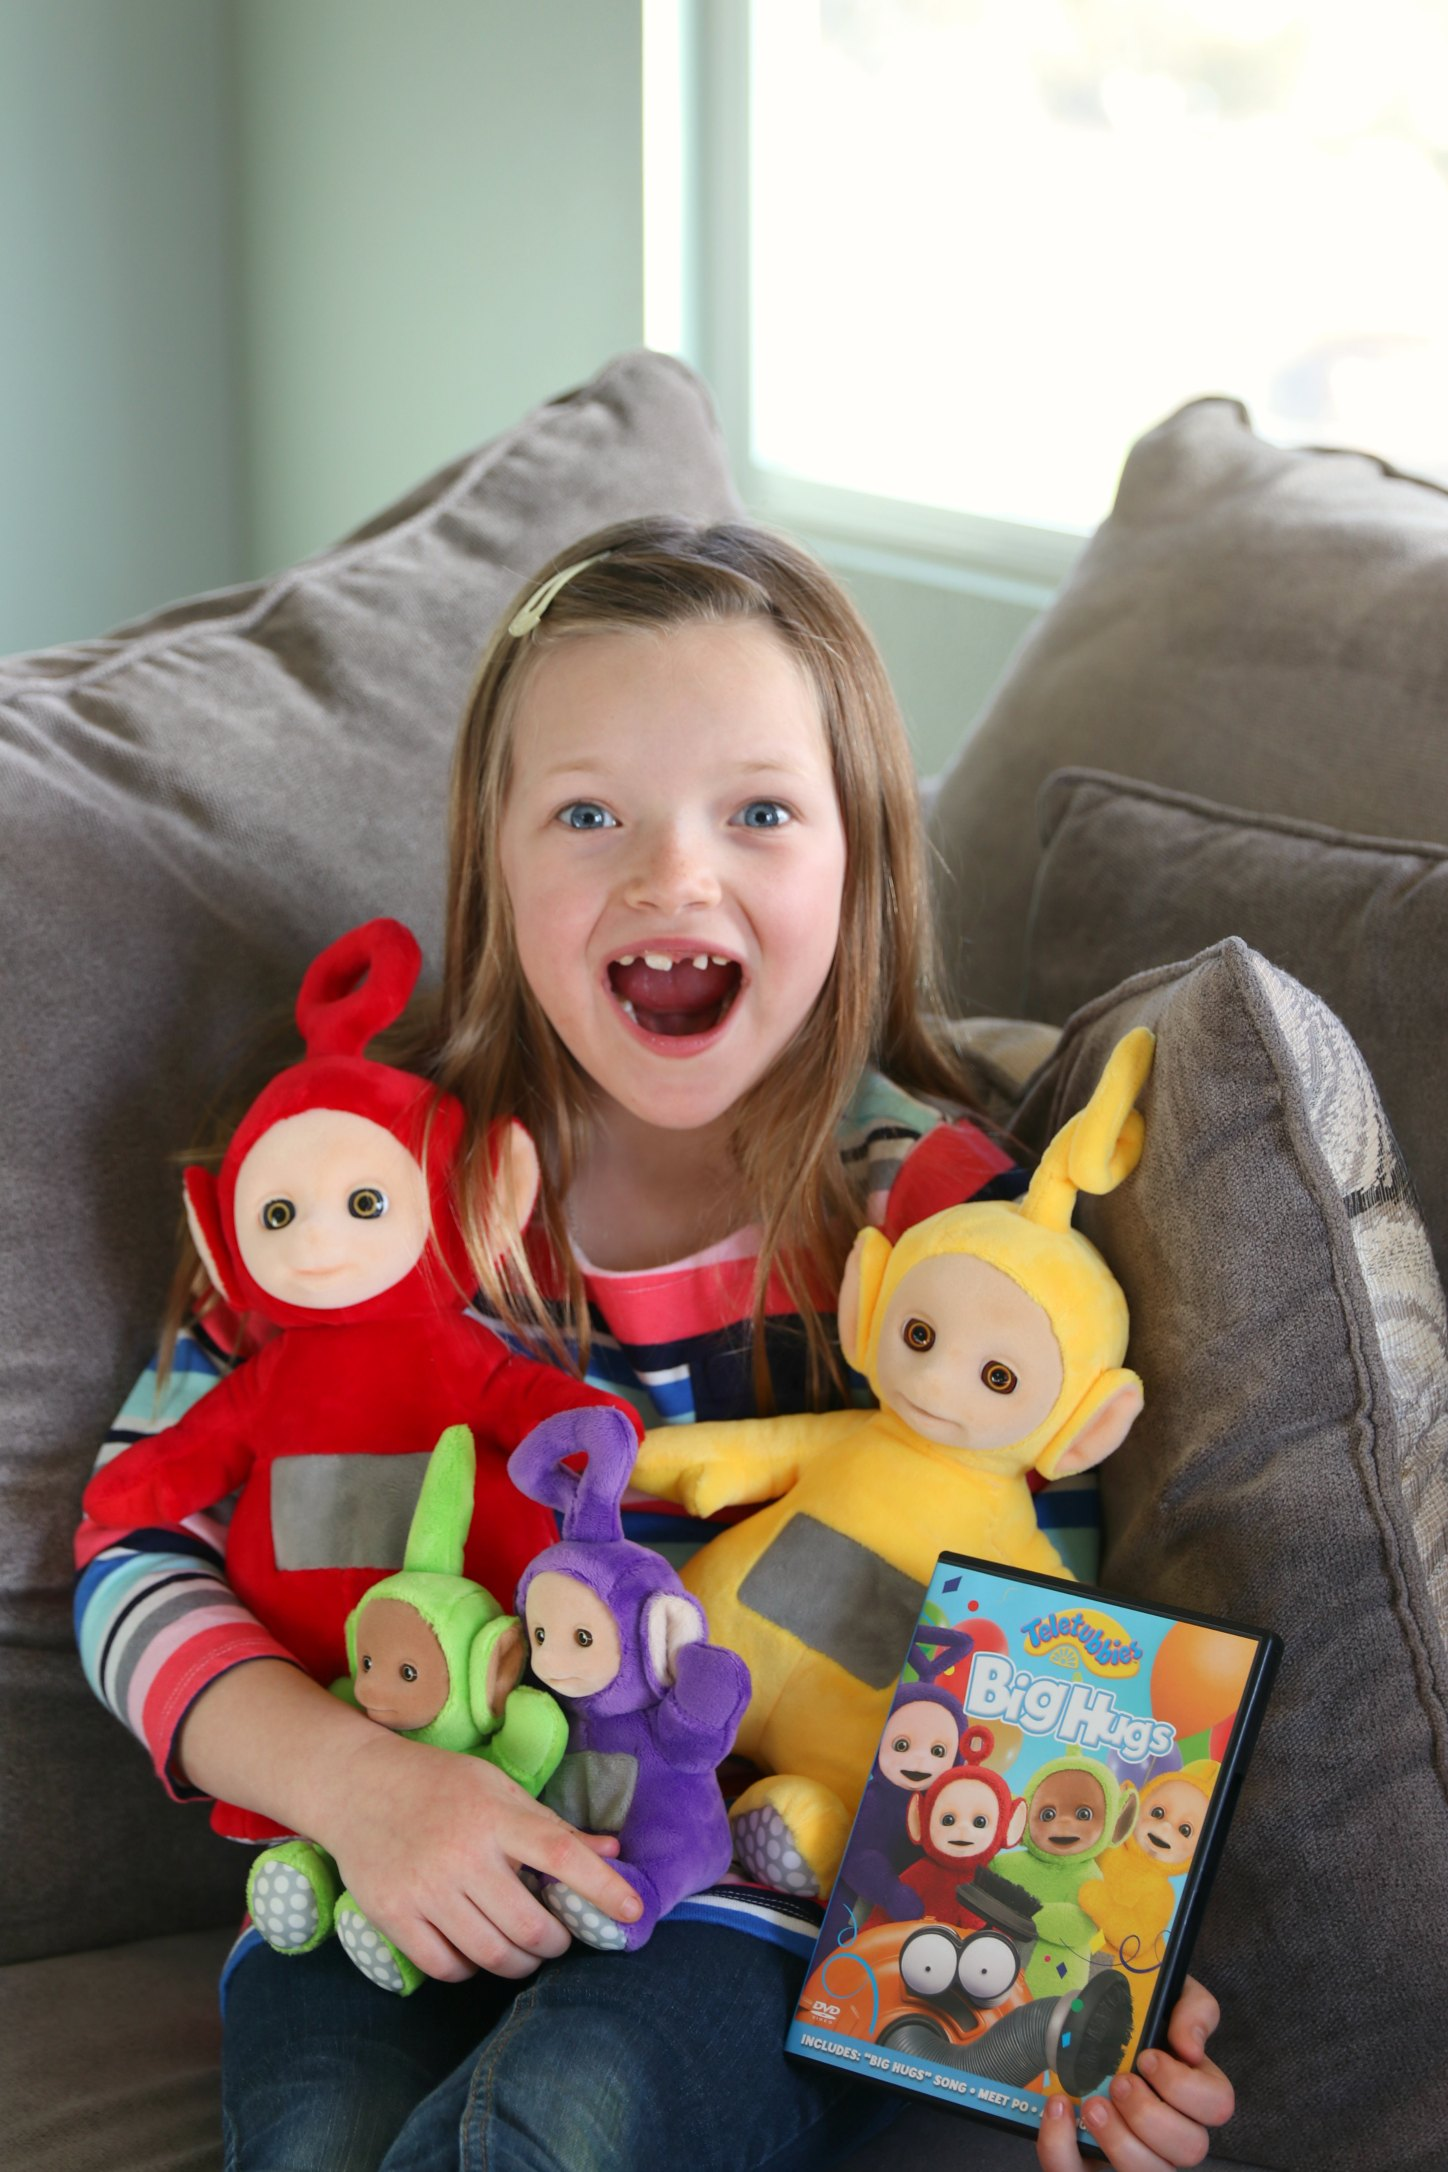 New Teletubbies Toys and DVD For Imaginative Play – It s a Lovely